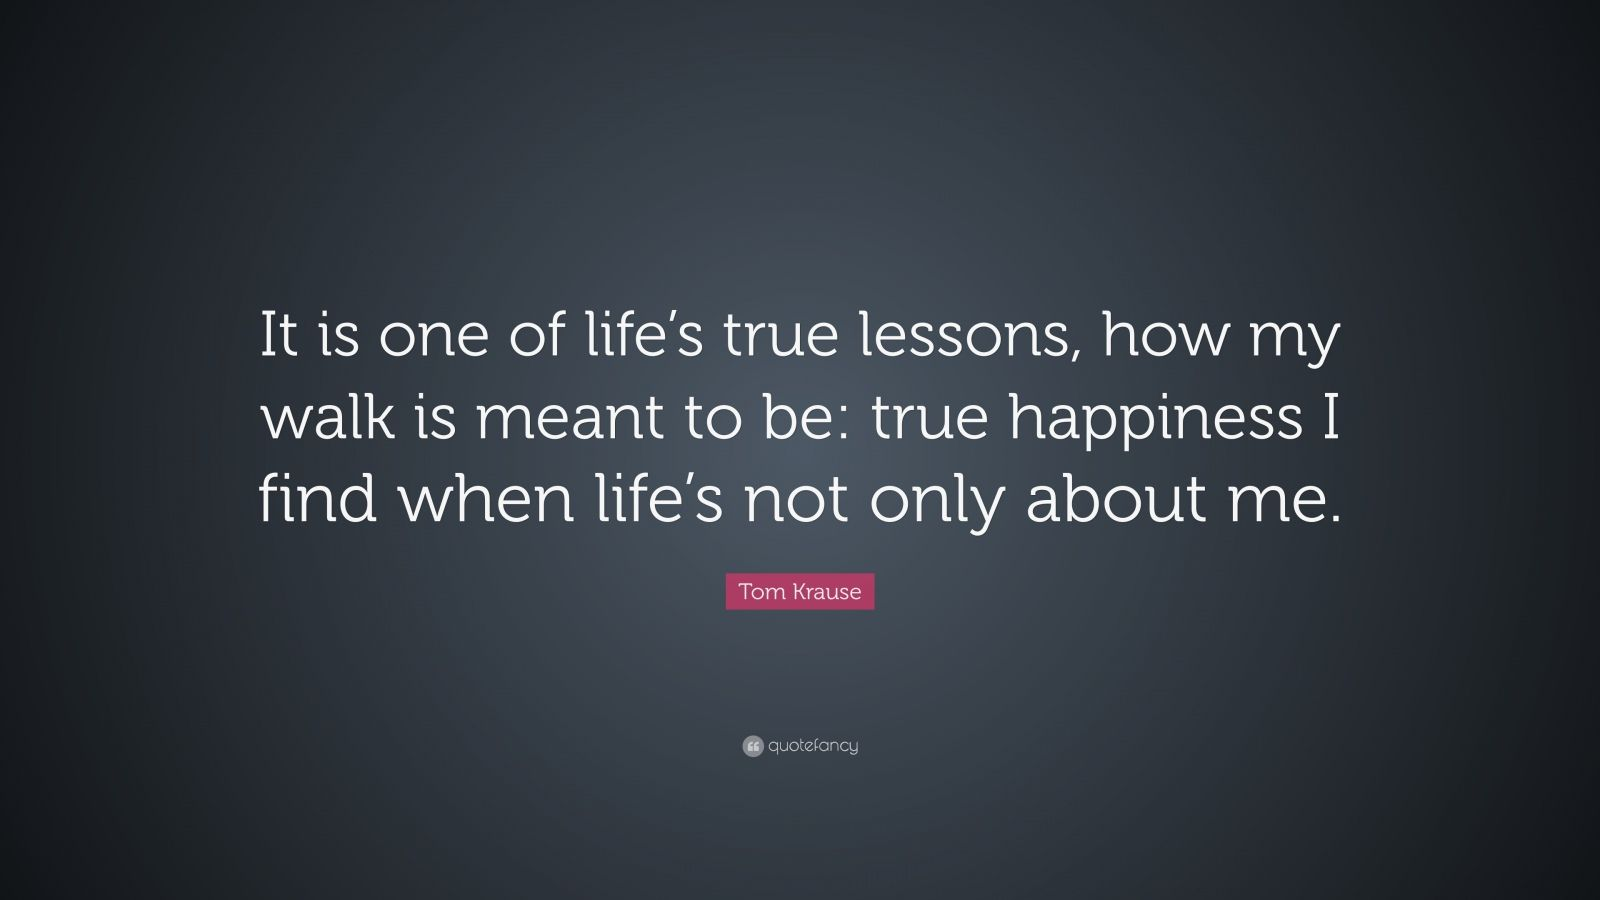 """Tom Krause Quote: """"It is one of life's true lessons, how my walk is meant to be: true happiness I find when life's not only about me."""""""